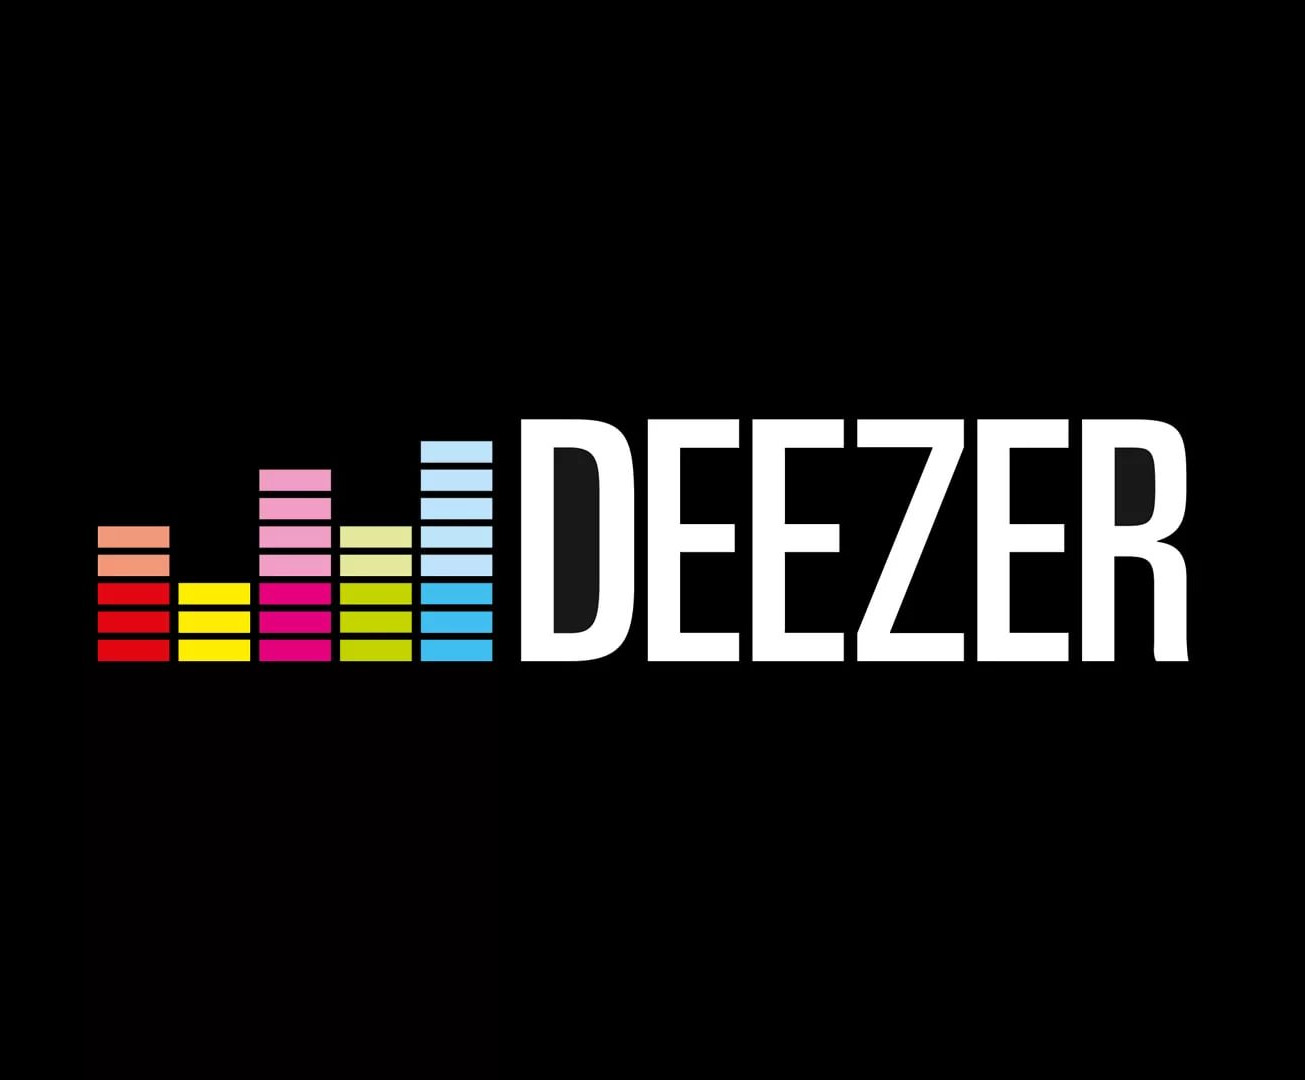 Deezer Soundcloud